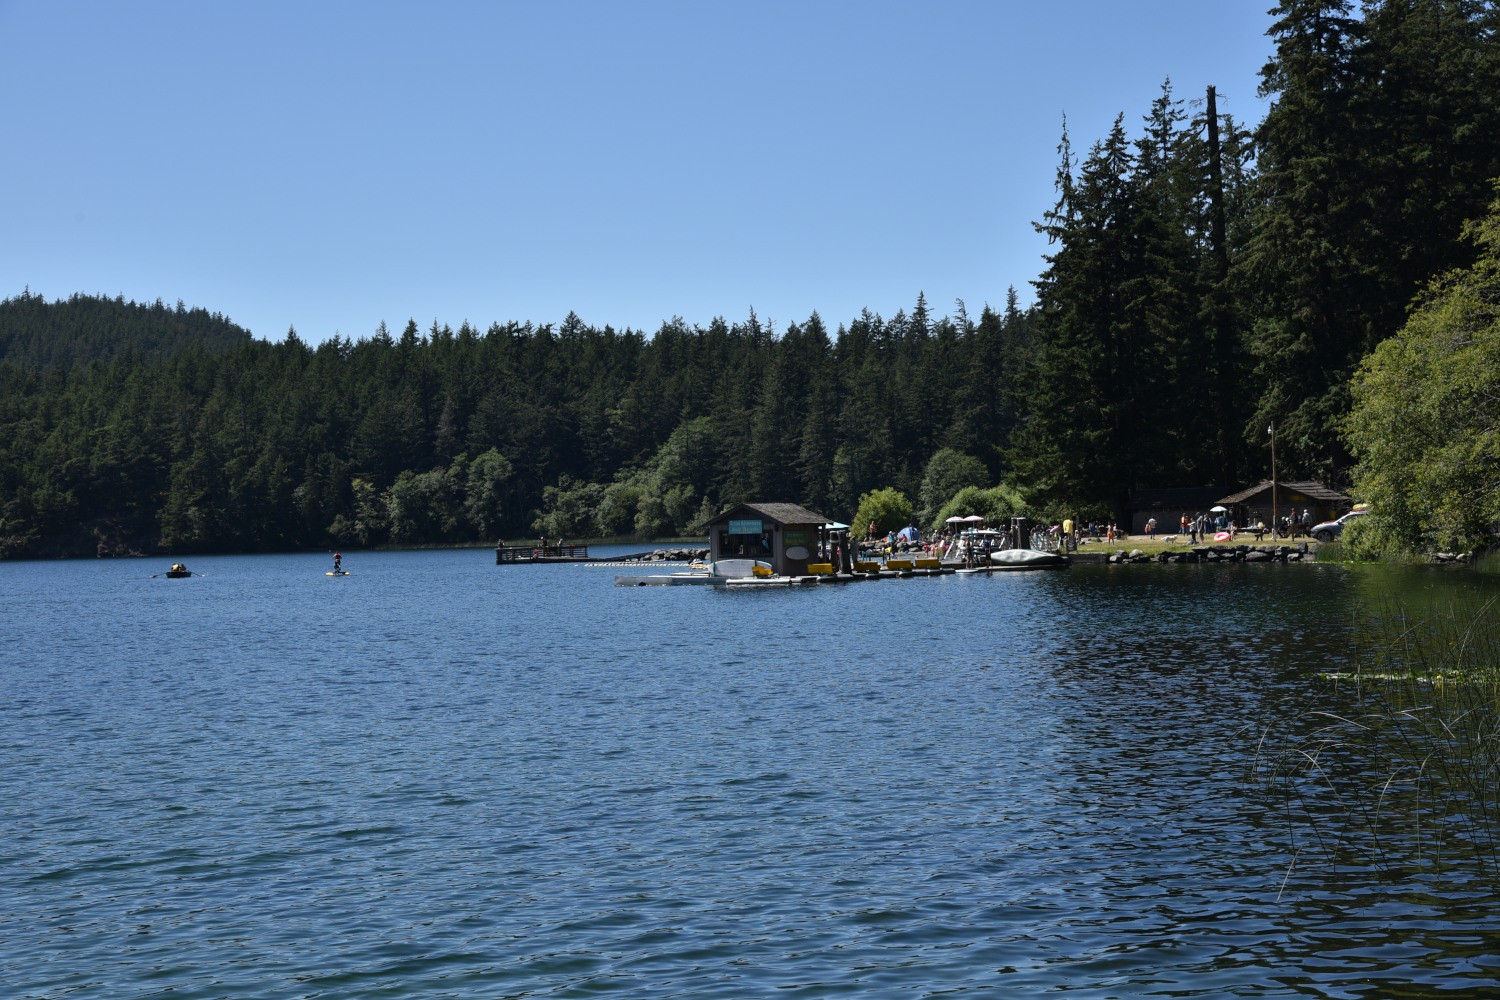 Lovely Cascade Lake in Moran State Park is a wonderful children's playground and only a 15 minute drive away.